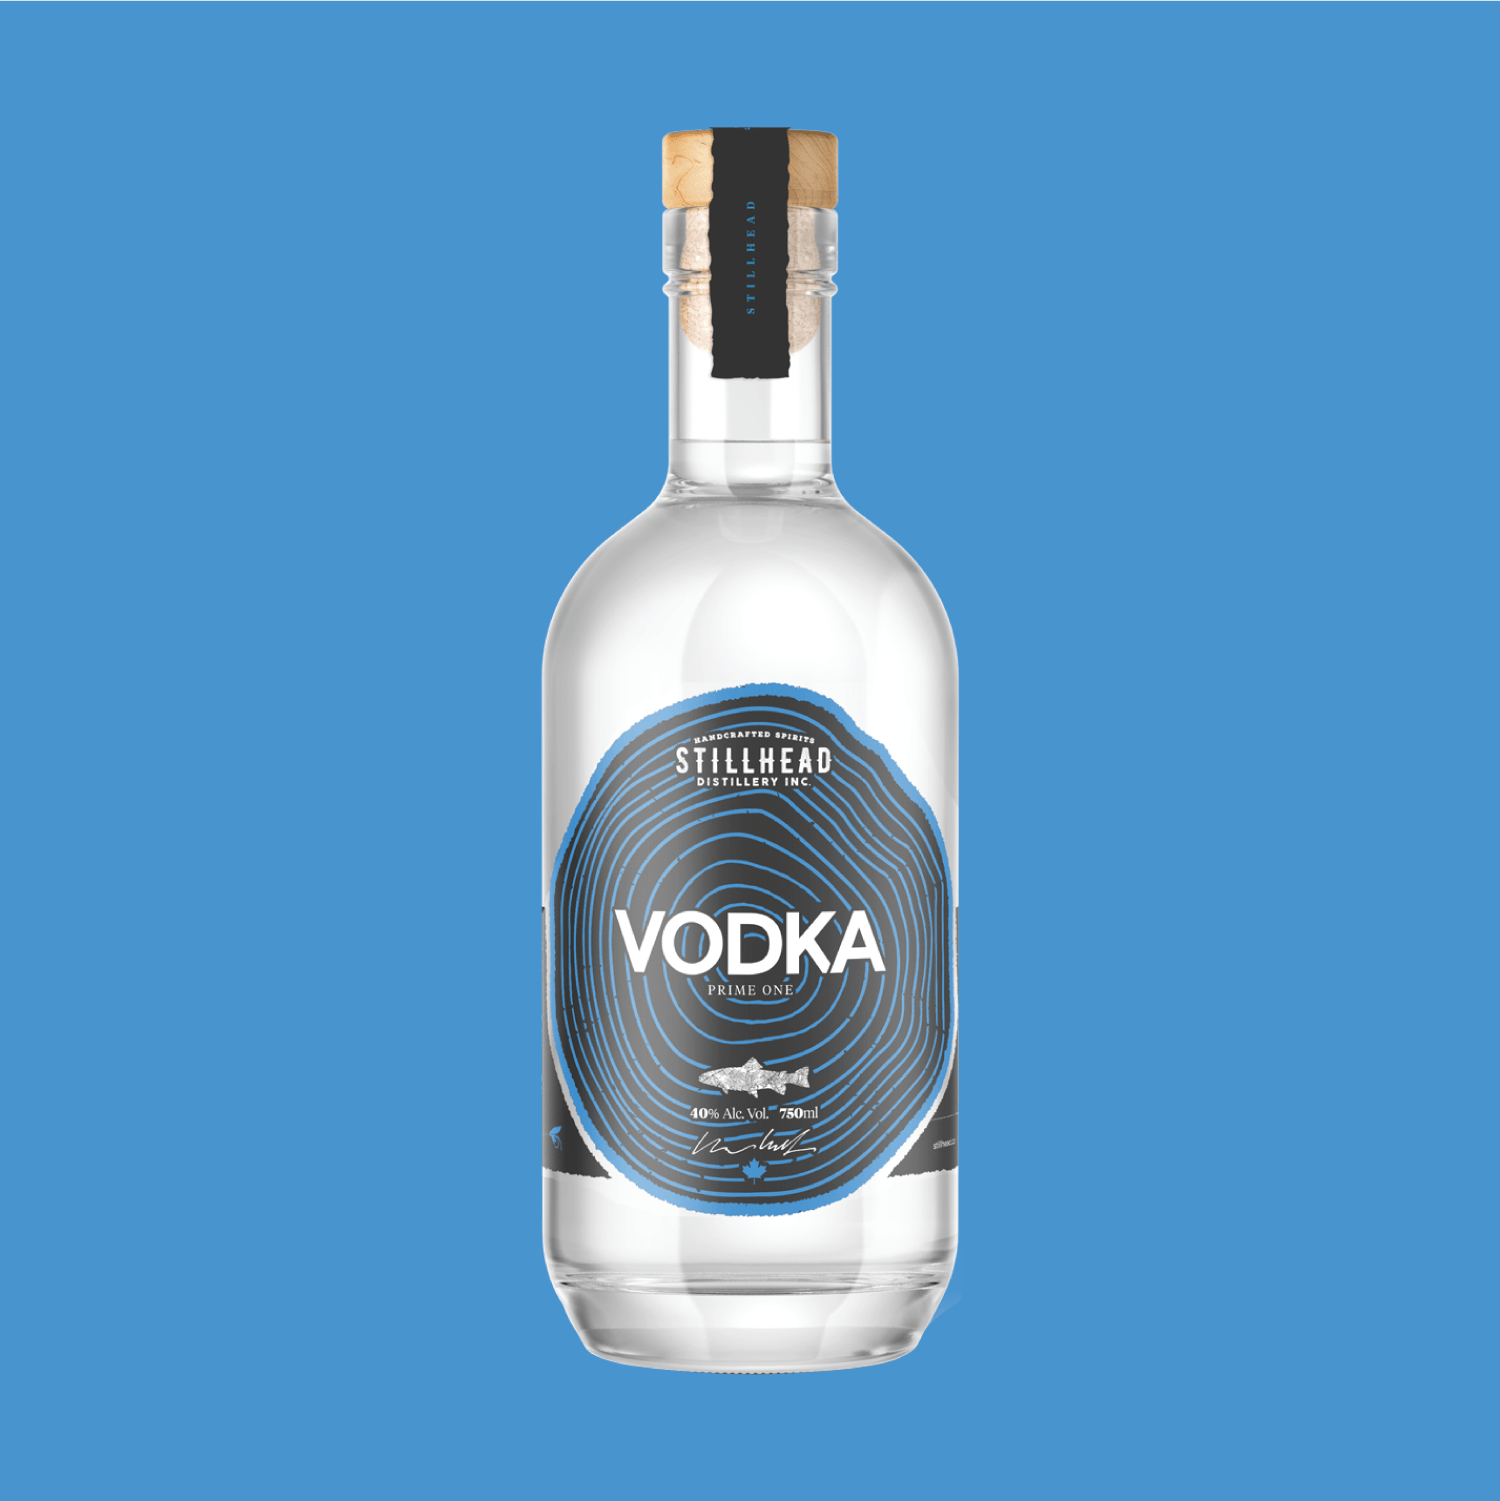 Prime 1 Vodka - A clean and smooth vodka perfect for any cocktail.$22.49, 375 ml